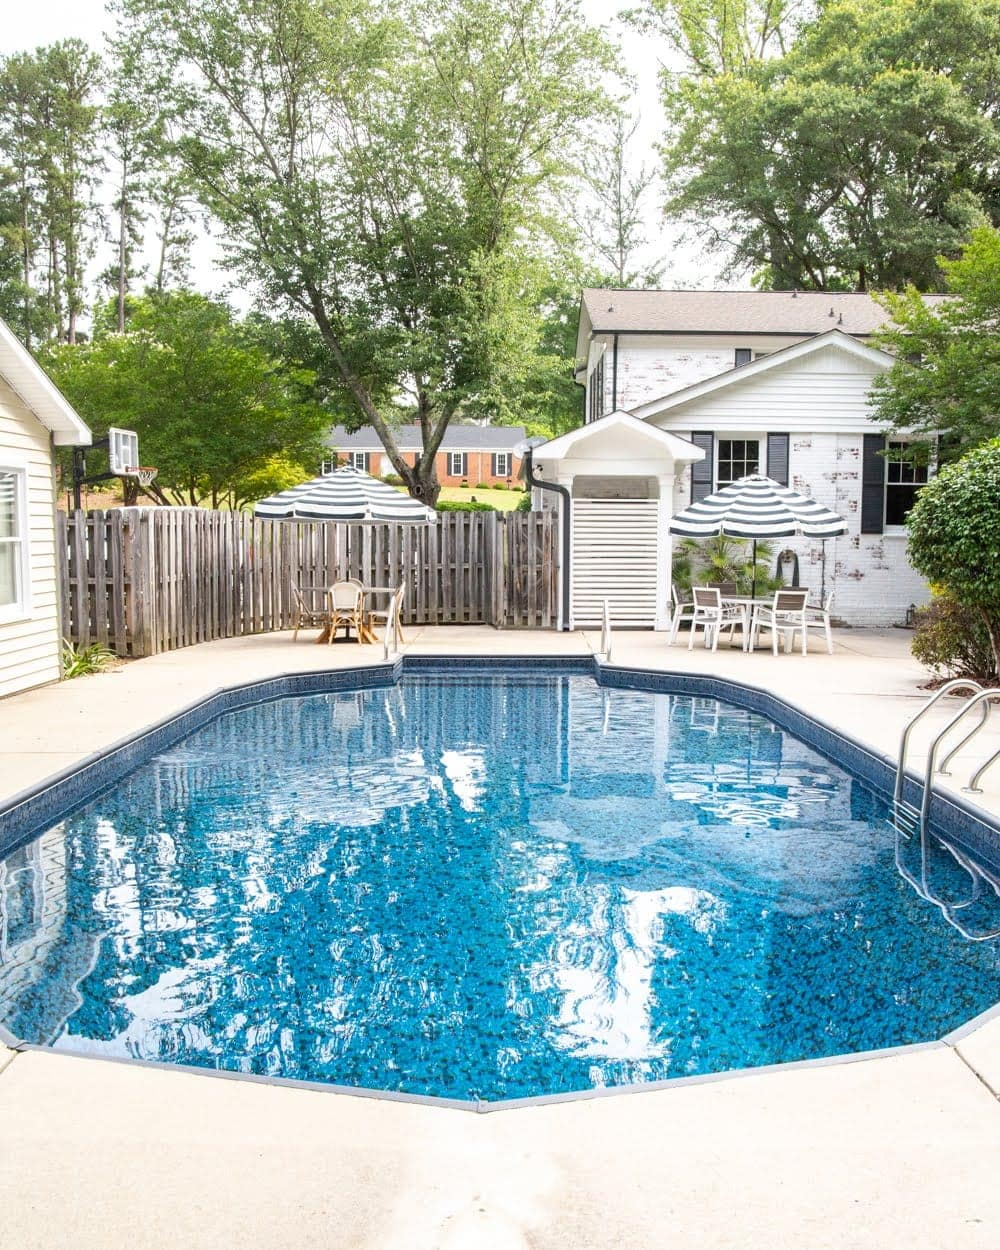 Swimming Pool Liner Makeover Reveal | Obsidian pool liner from GLI Pool Products TrueStone Collection and limewashed brick